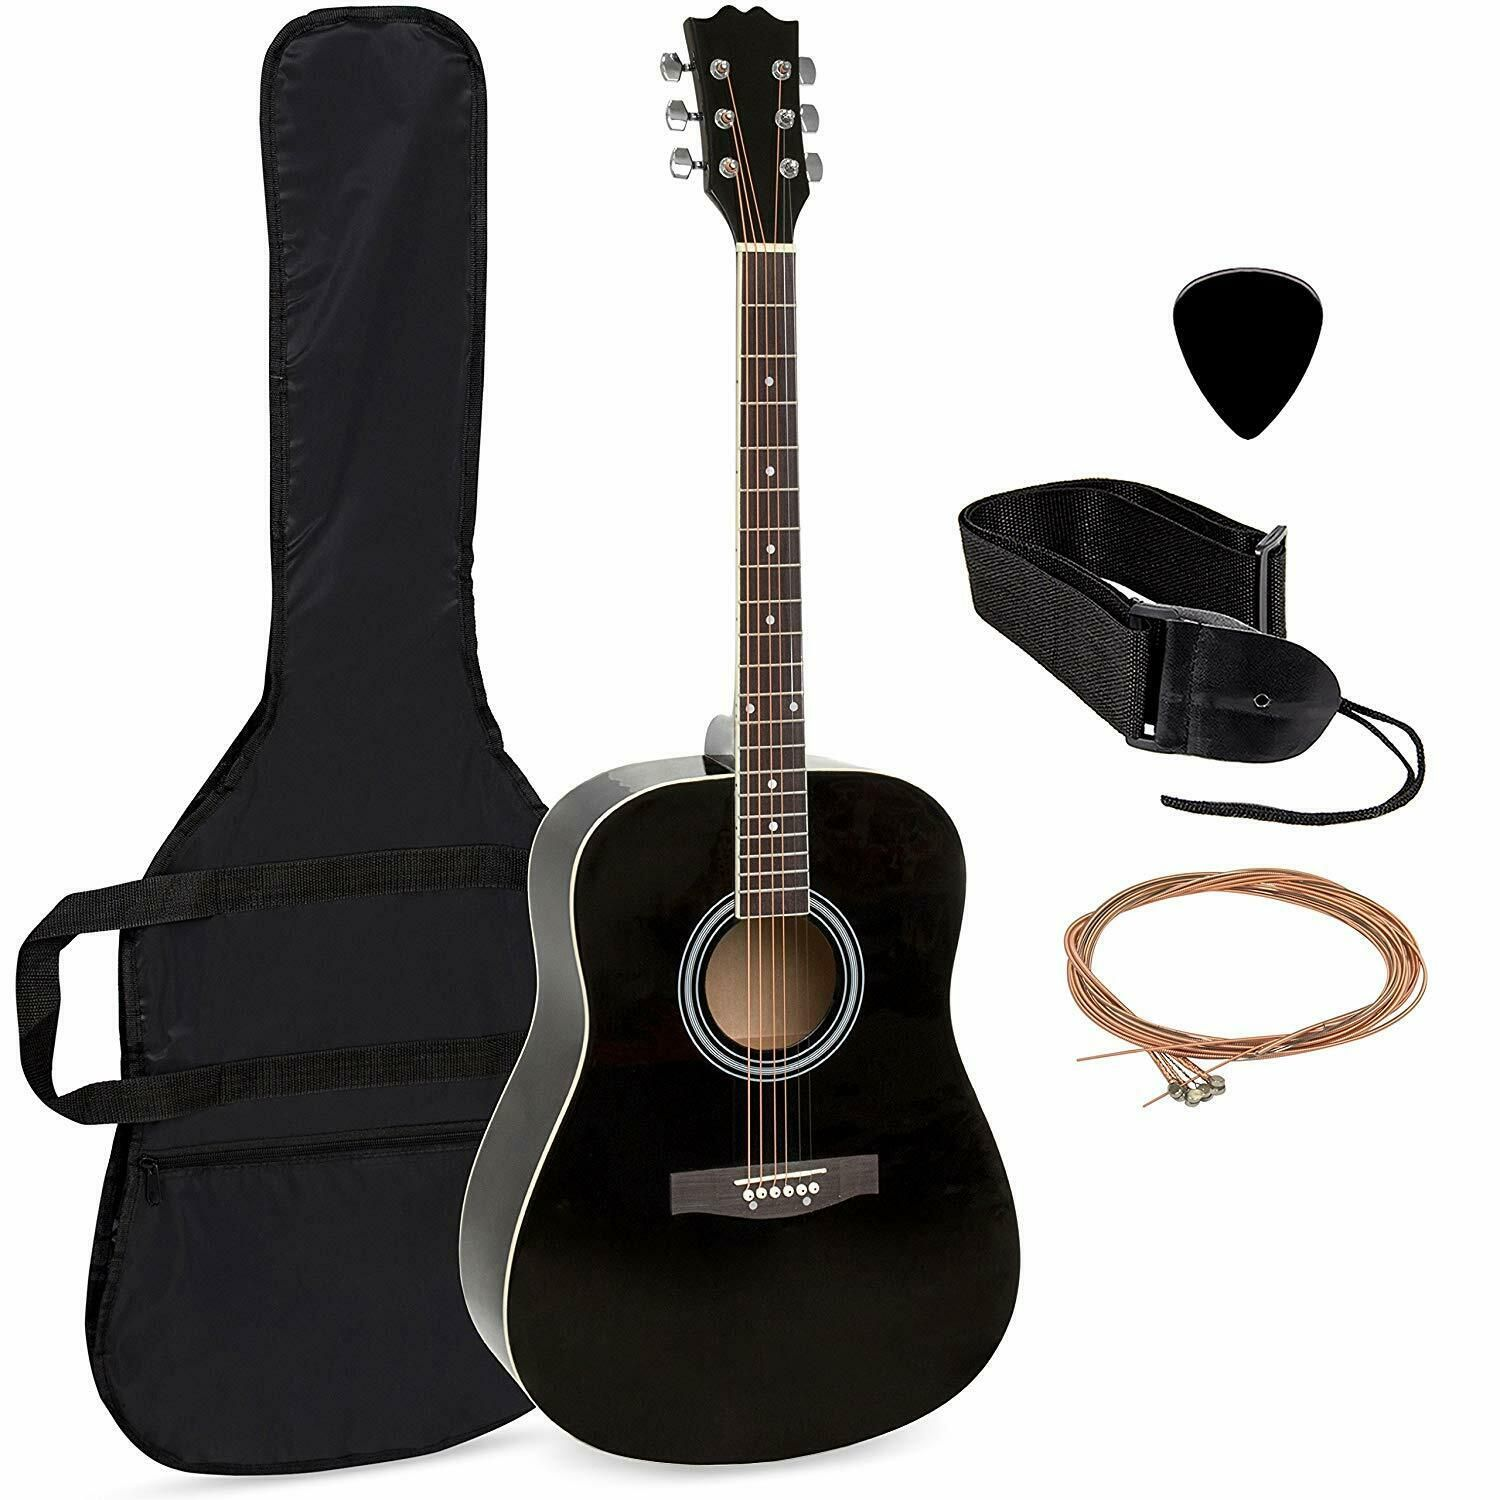 41in Full Size All Wood Acoustic Guitar Starter Kit W Case Pick Shoulder Acoustic Guitar Ideas Of Acoustic Guitar Acou Guitar Acoustic Guitar Guitar Case